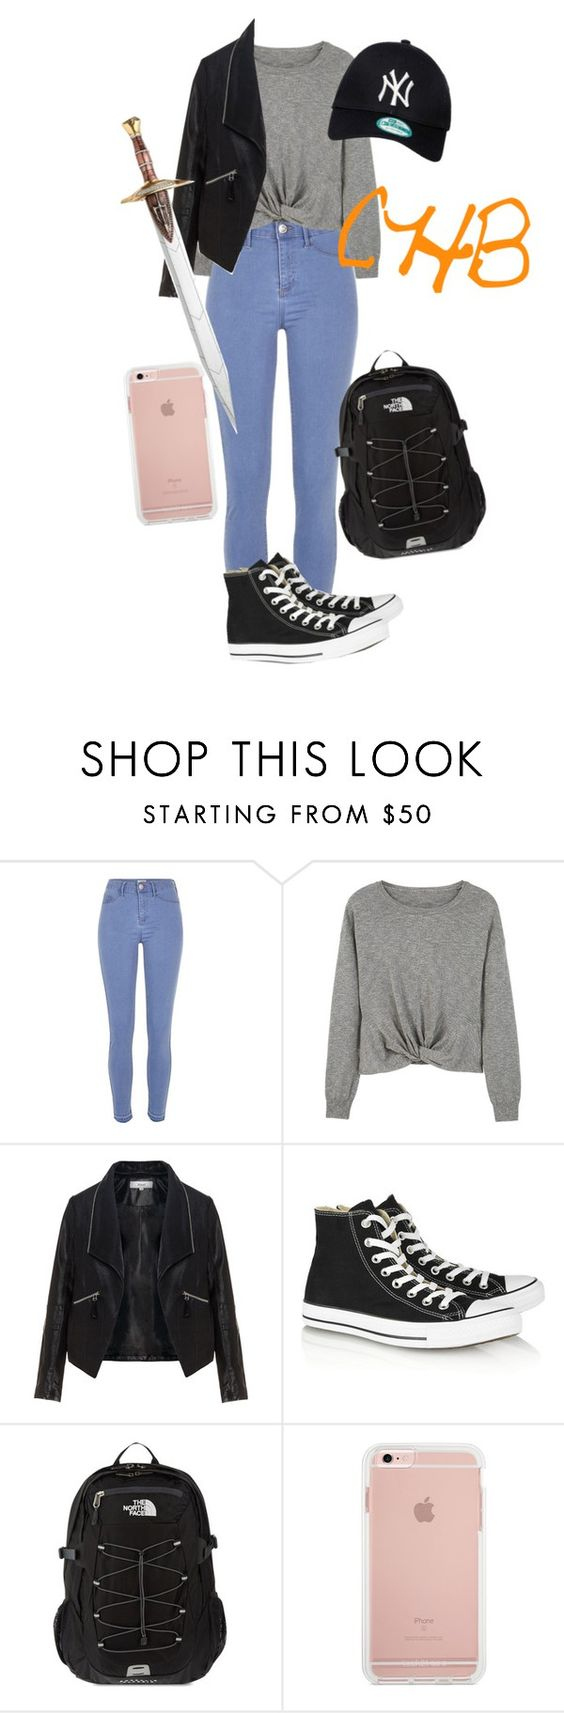 """""""CHB Quest"""" by queen0michelle ❤ liked on Polyvore featuring River Island, MANGO, Zizzi, Converse, The North Face and New Era"""